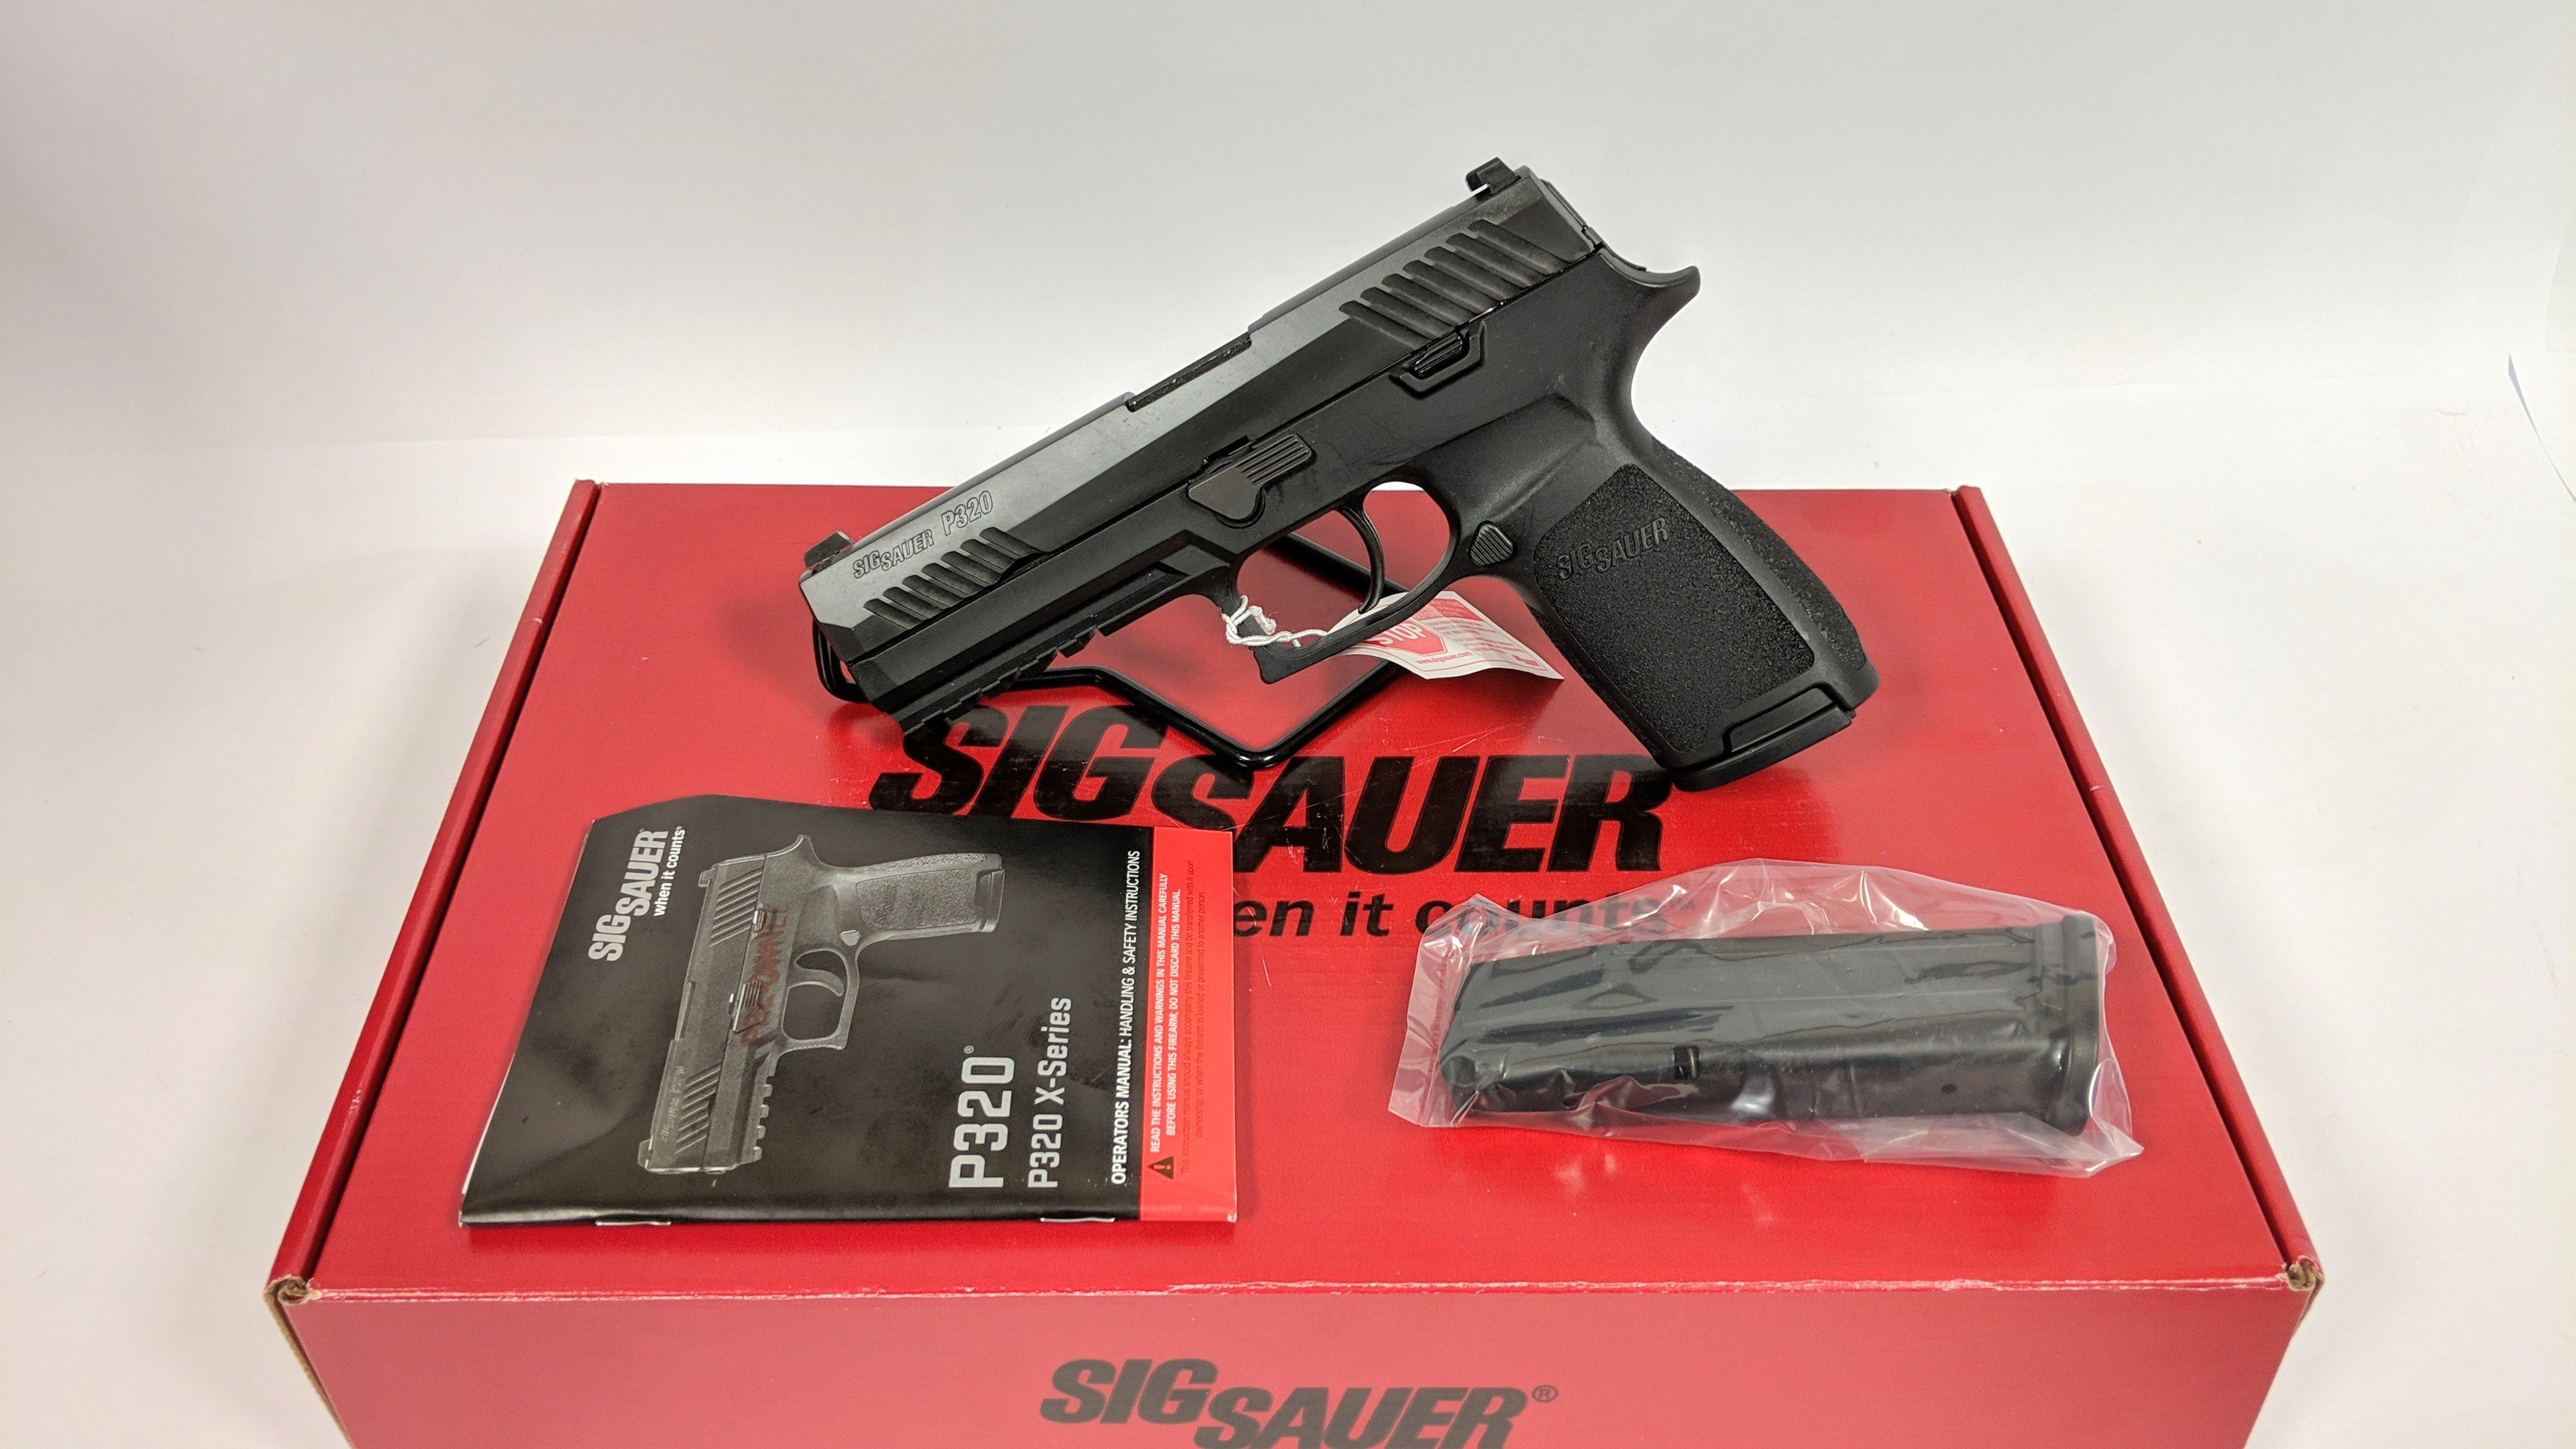 Sig Sauer P320 Full Size 9mm W / Night Sights, CPO (certified pre owned, 1  year warranty) - $347 99 + $10 99 S/H ($339 99 Cash)